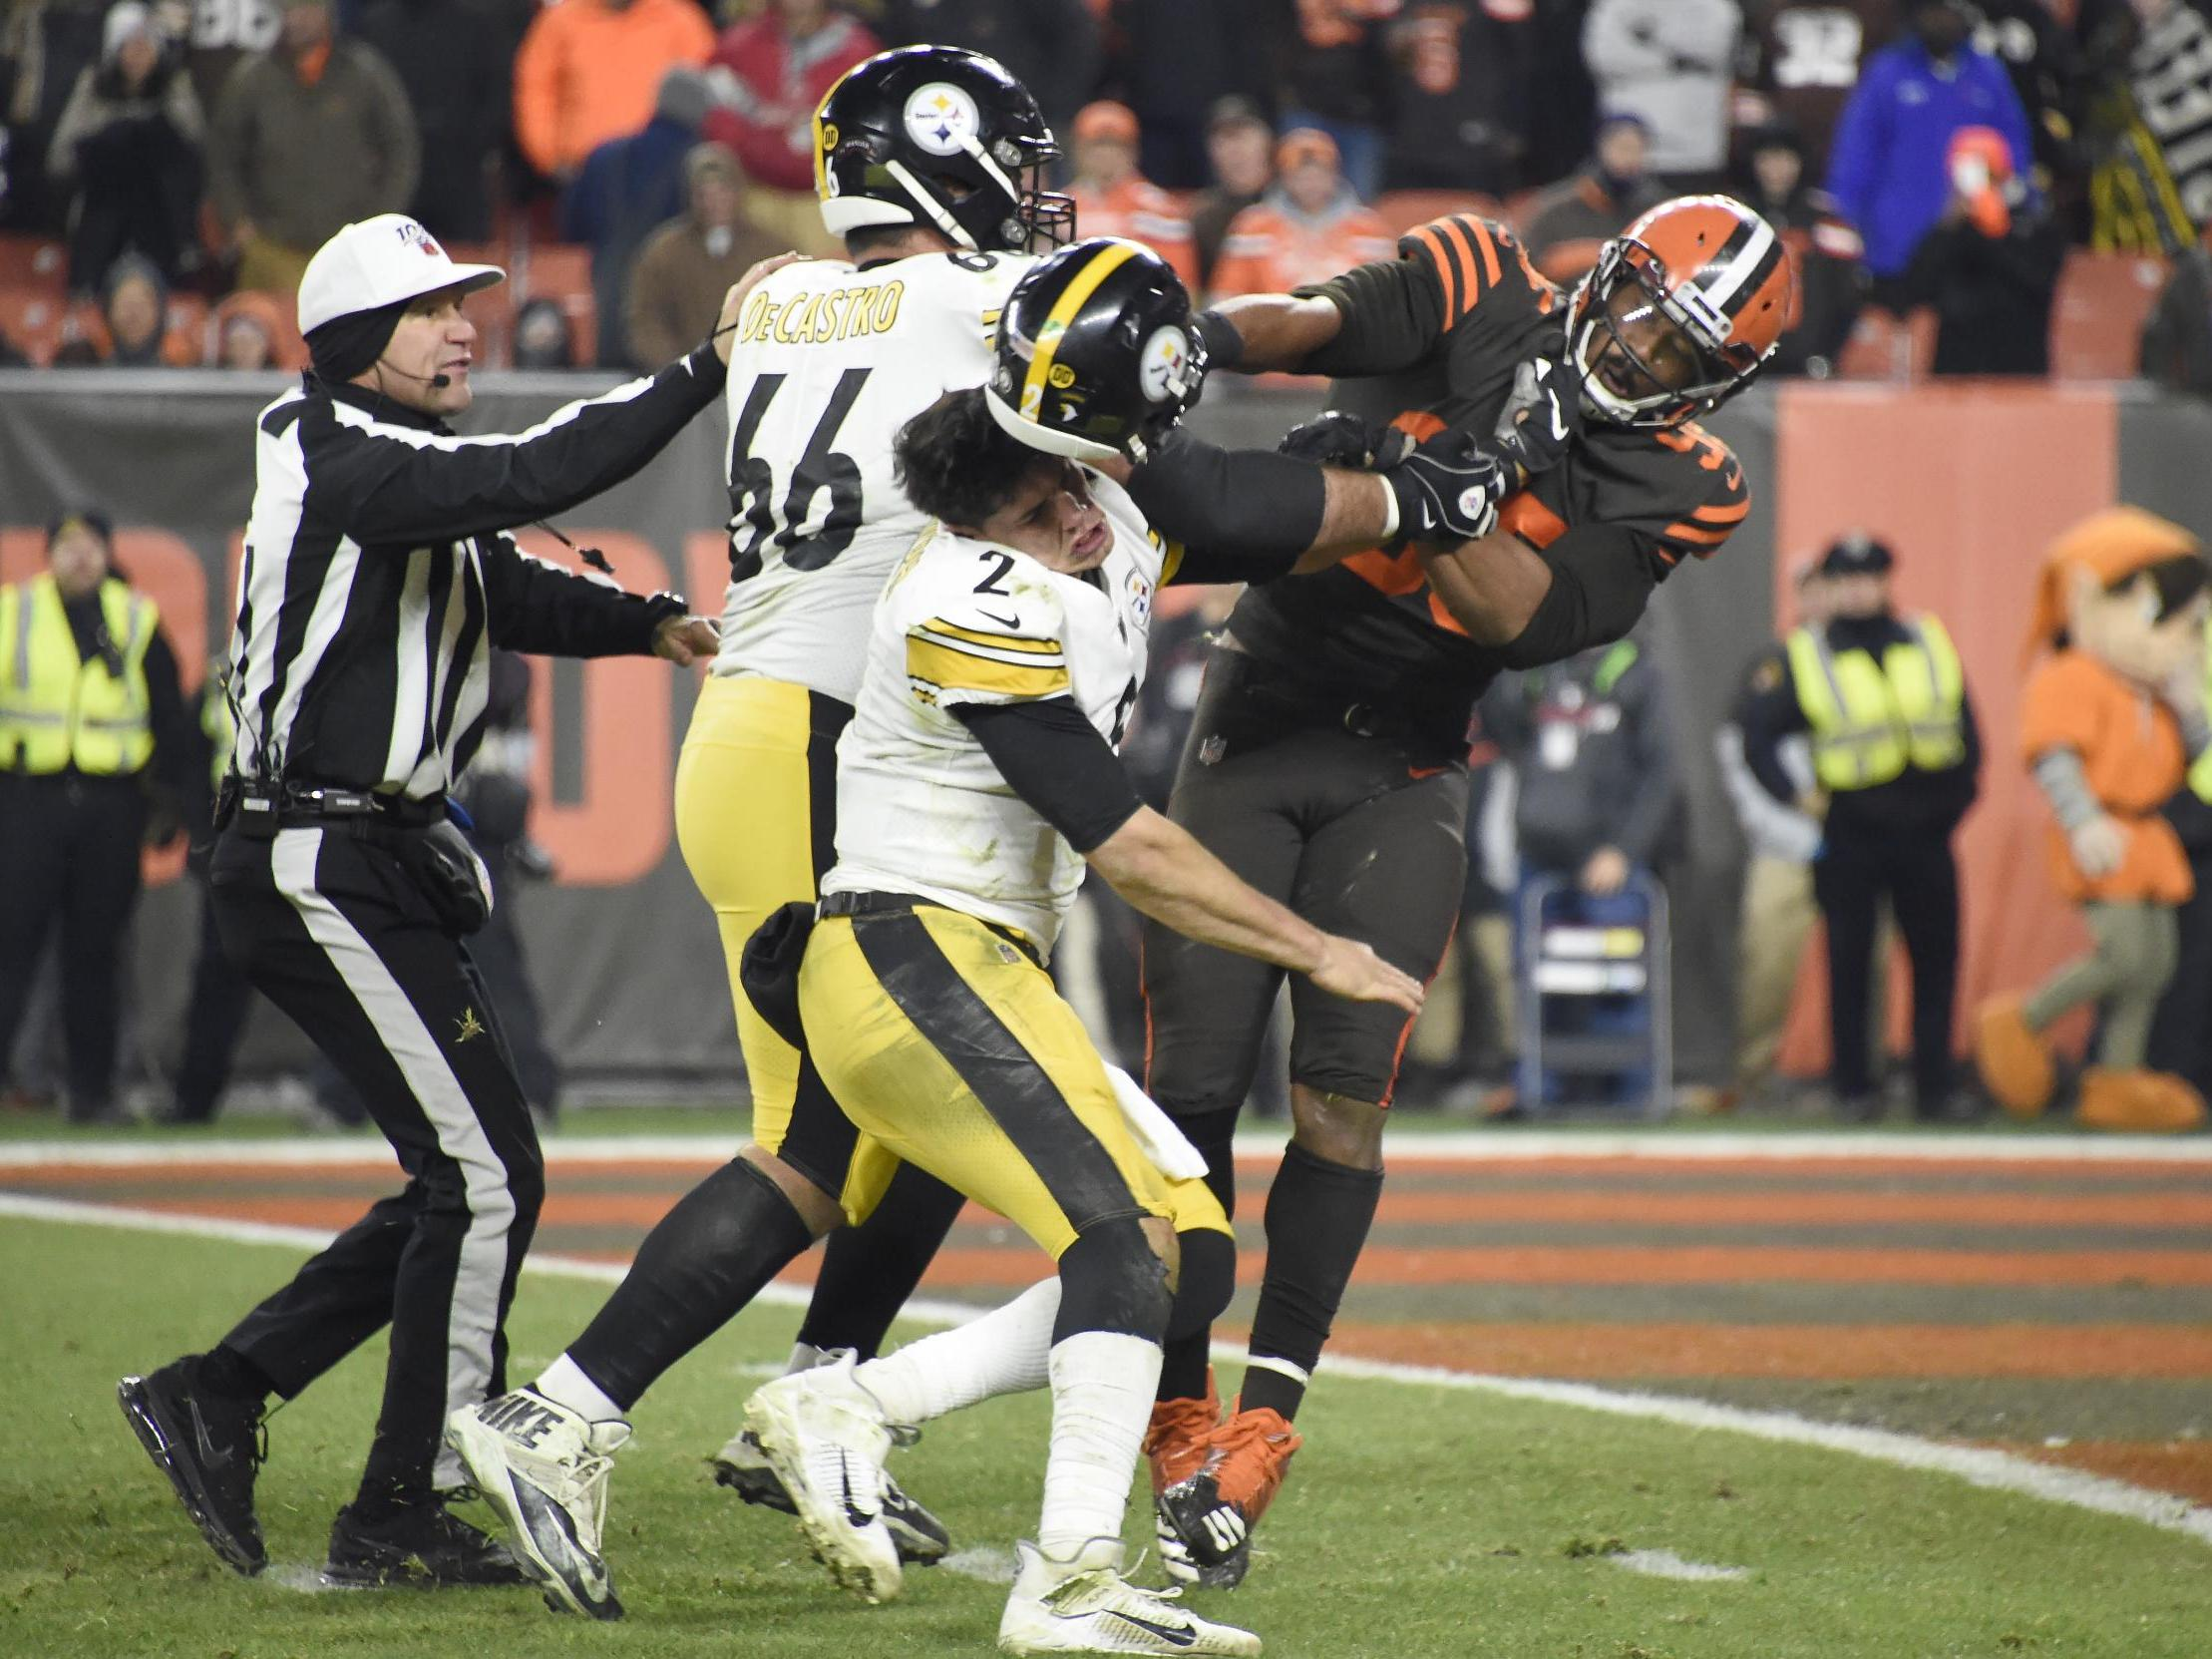 Shocking moment of violence tarnishes Cleveland Browns' win over Pittsburgh Steelers